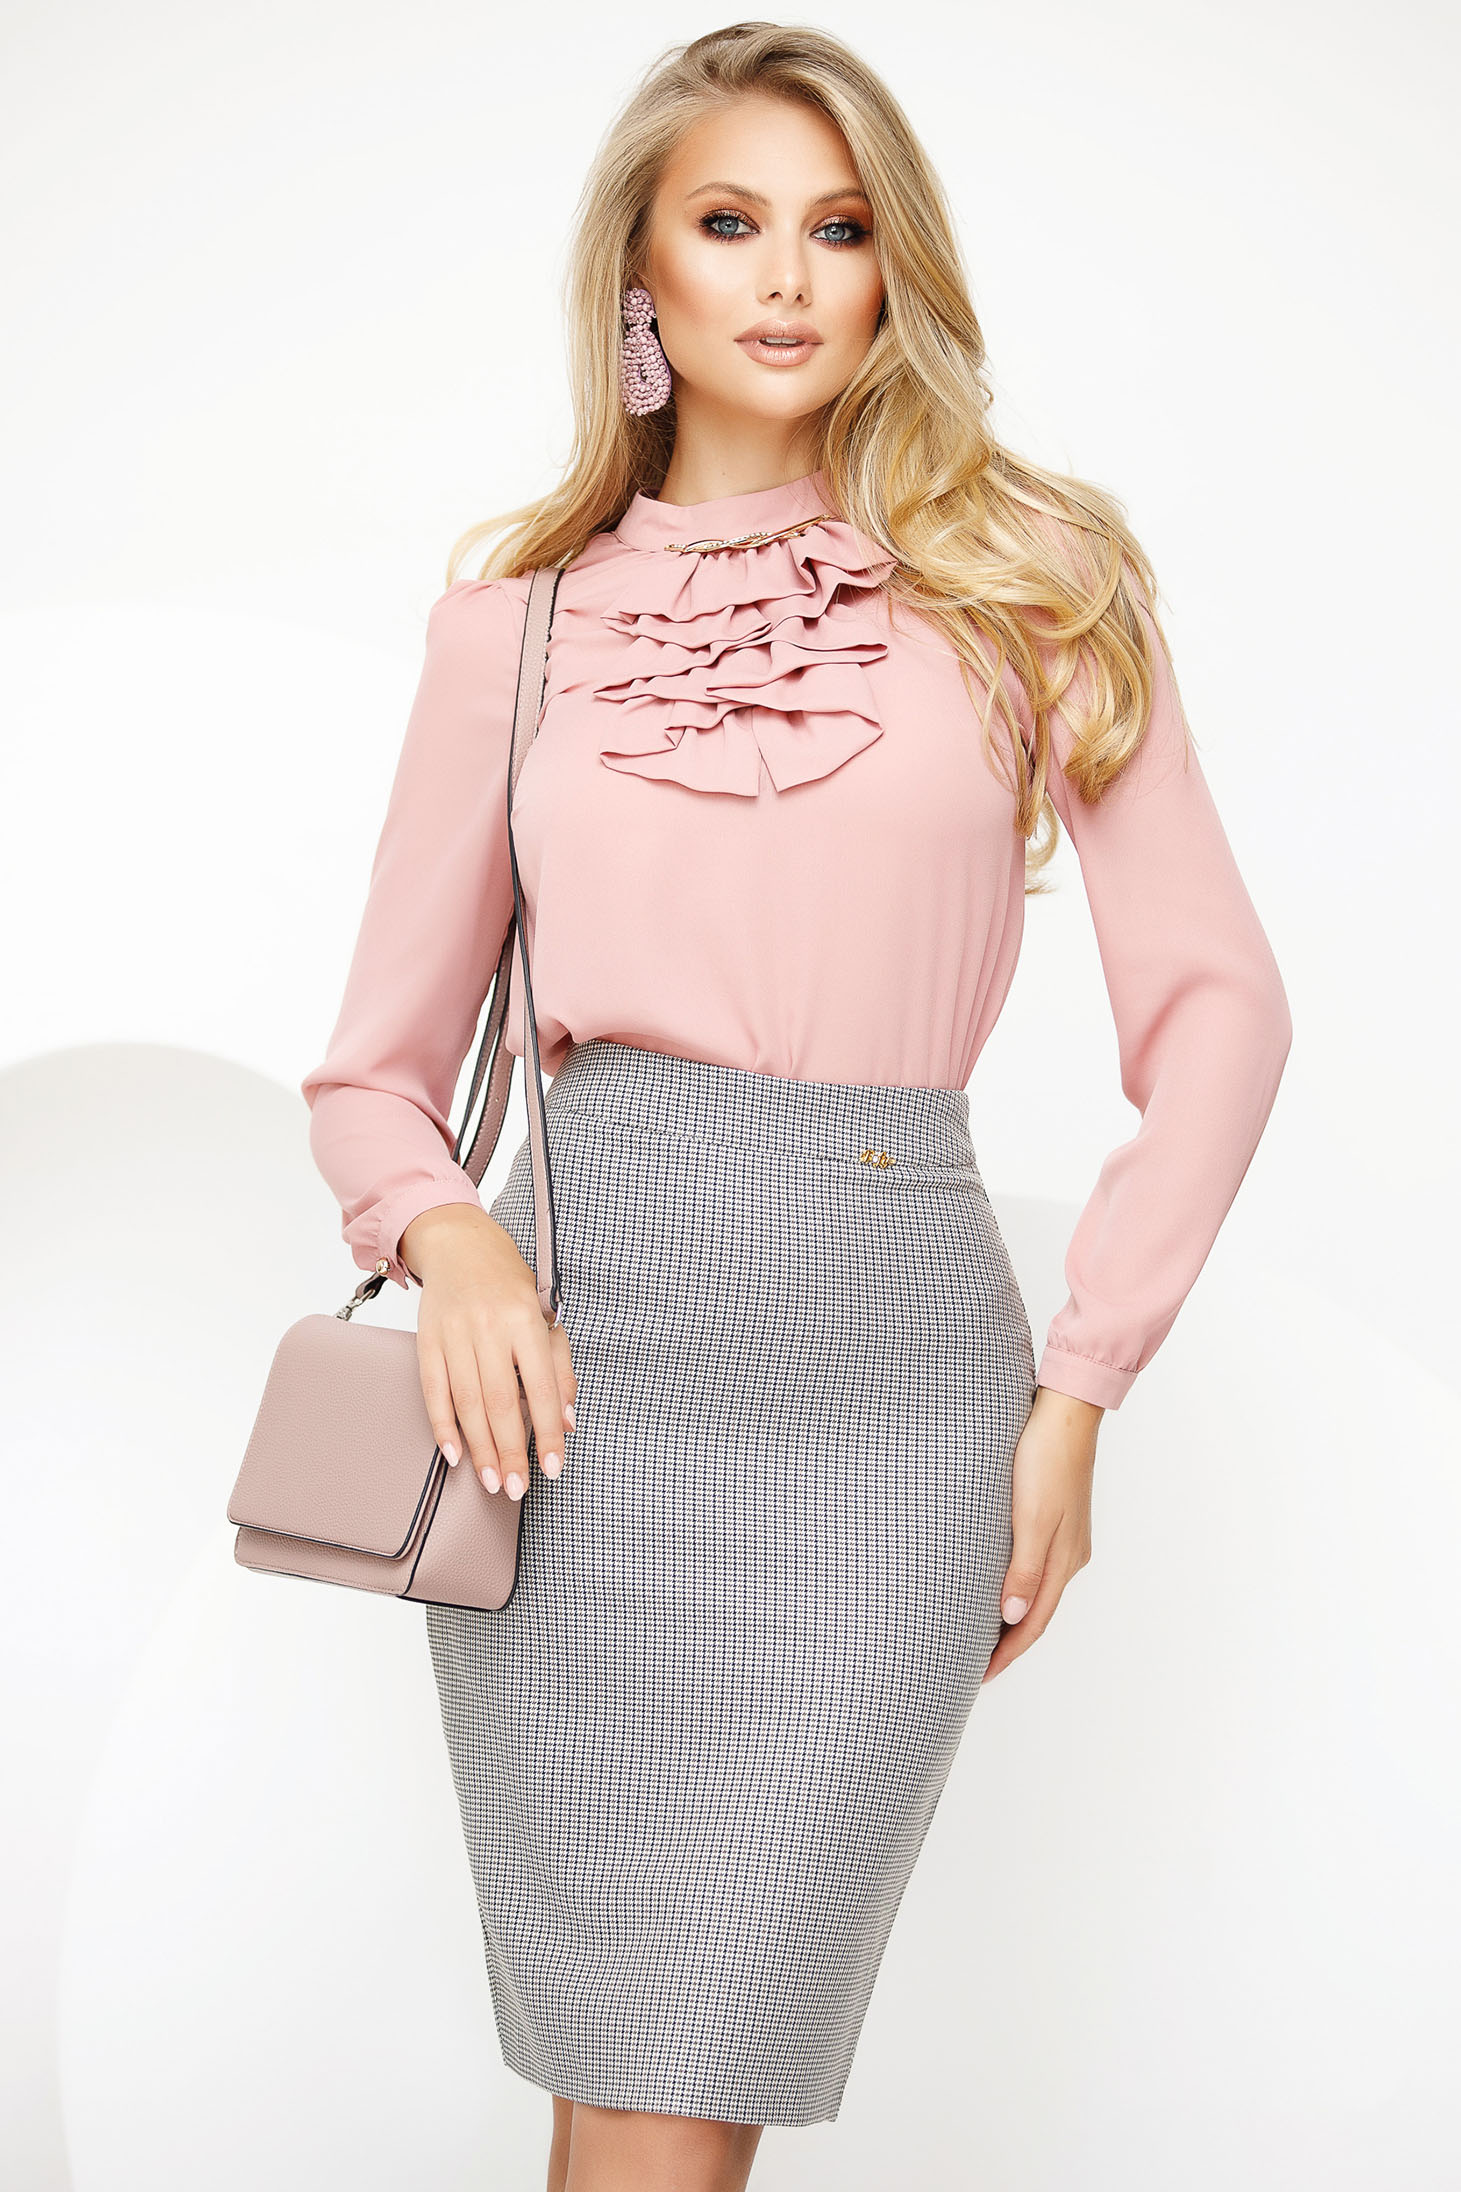 Women`s blouse lightpink elegant voile fabric with metalic accessory ruffled collar